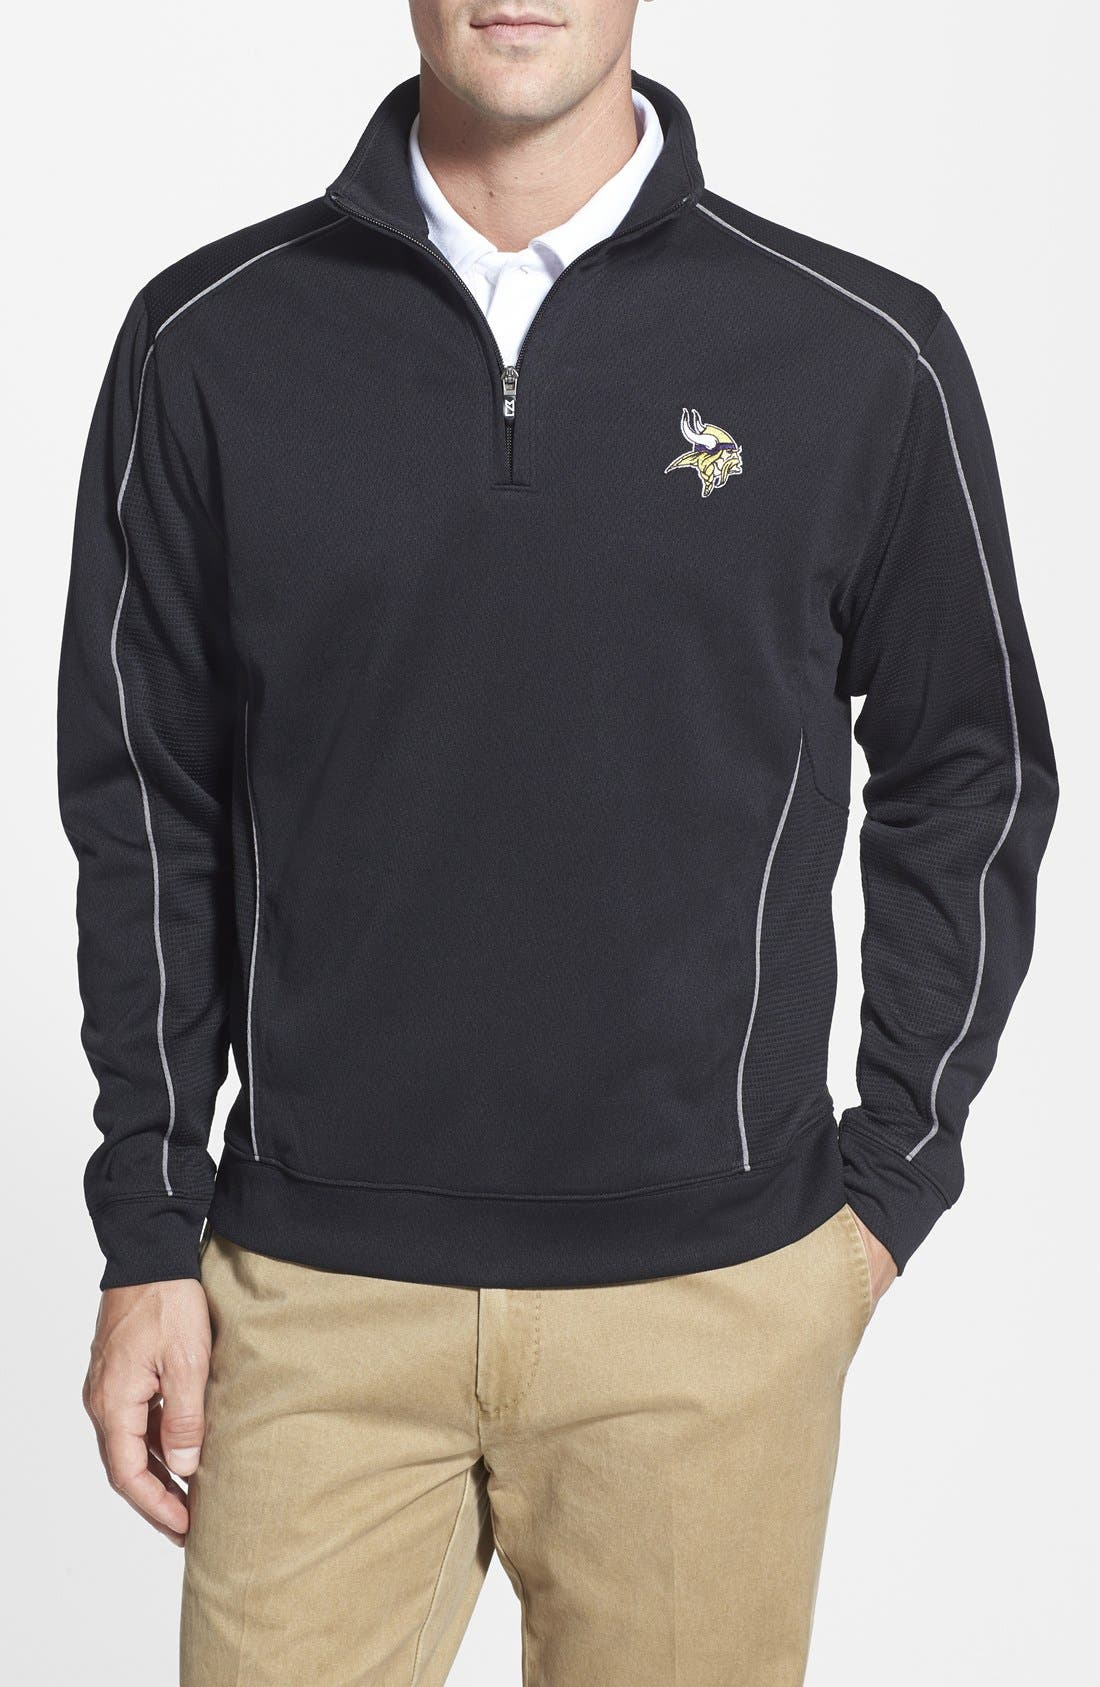 Cutter & Buck 'Minnesota Vikings - Edge' DryTec Moisture Wicking Half Zip Pullover (Big & Tall)